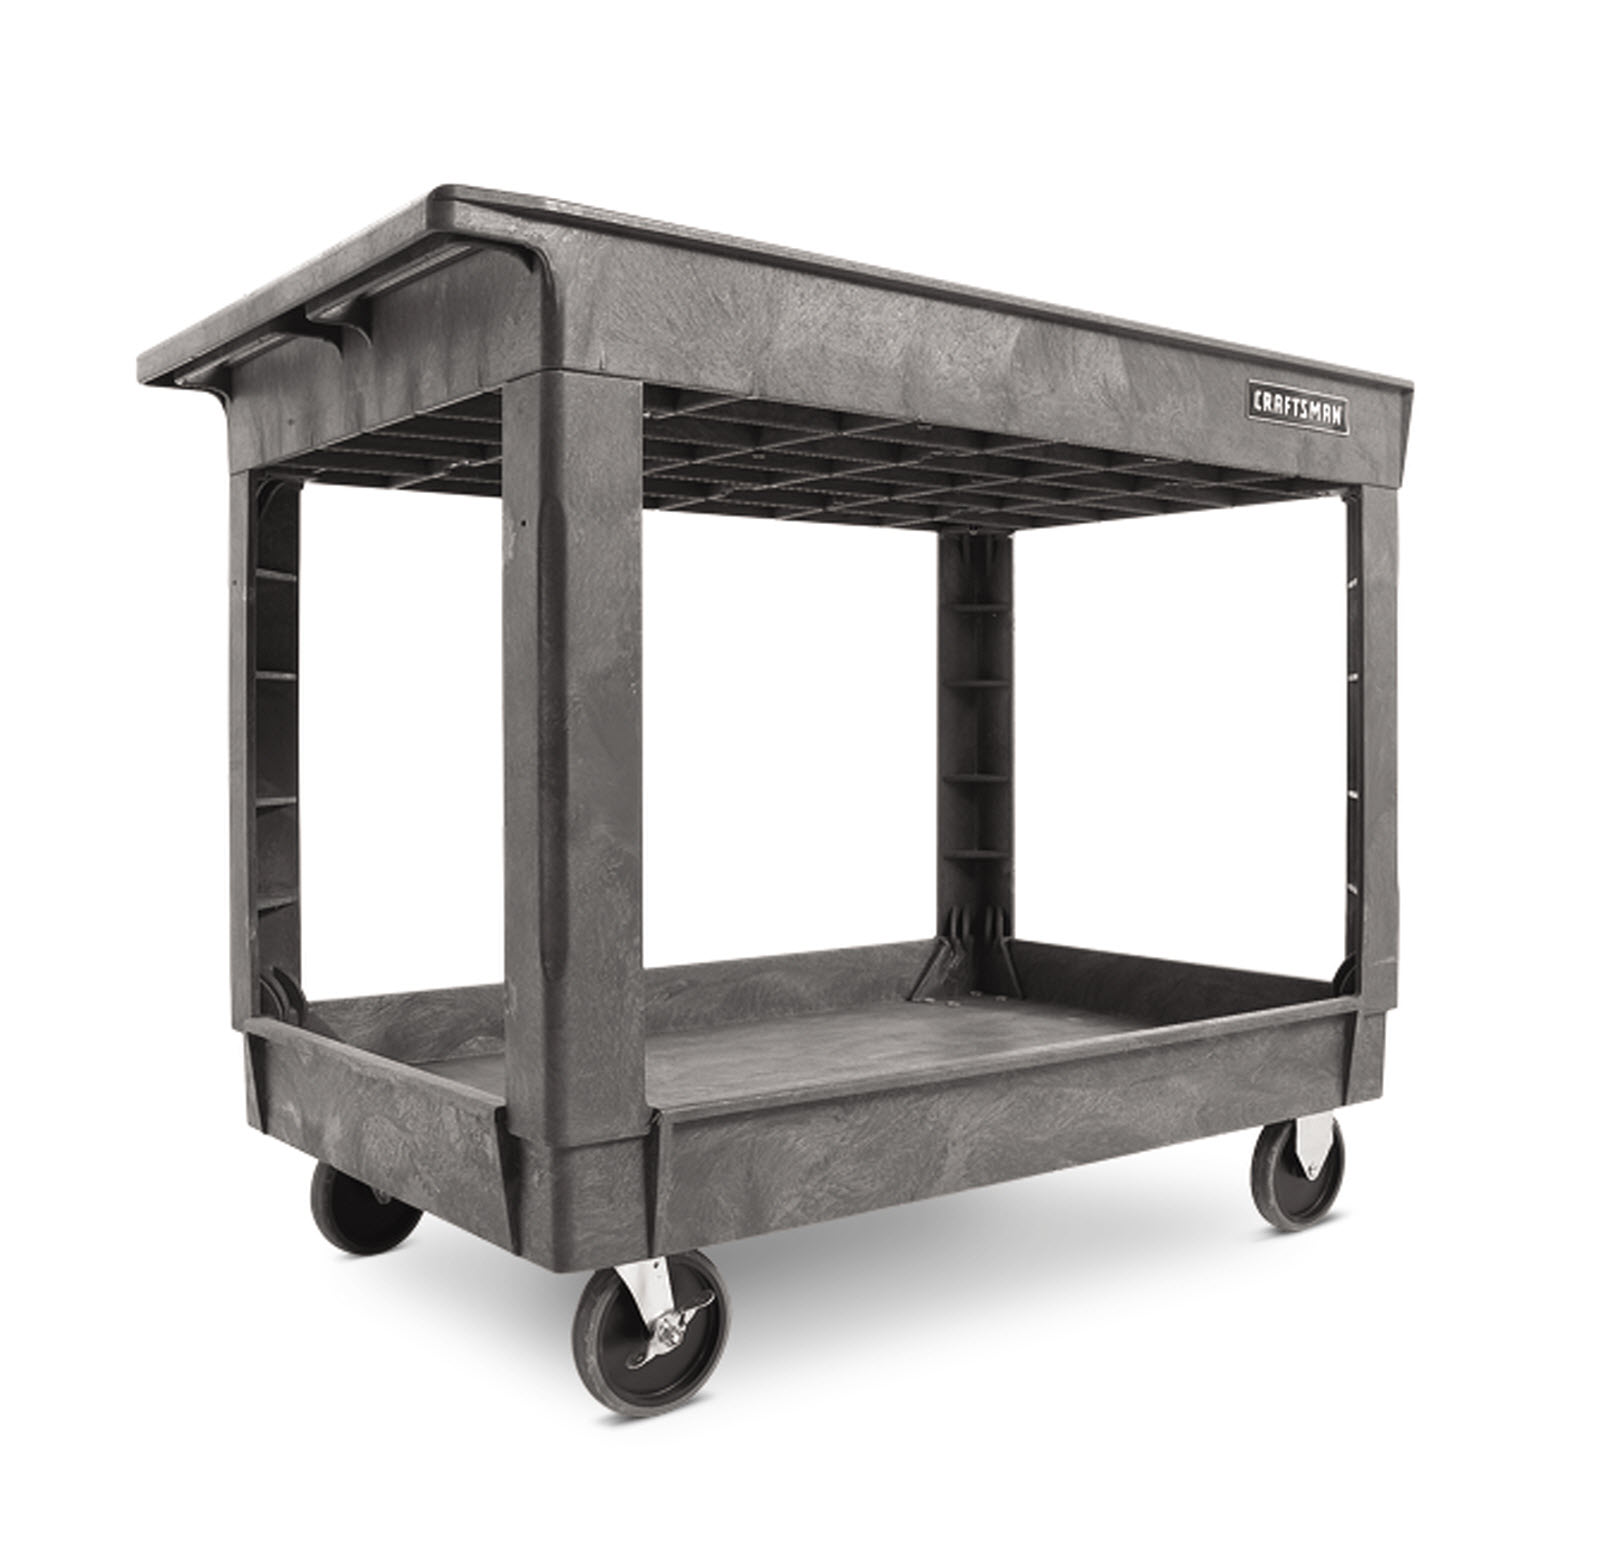 "Craftsman 34-1/2"" 2-Shelf Heavy-Duty Plastic Utility Cart"